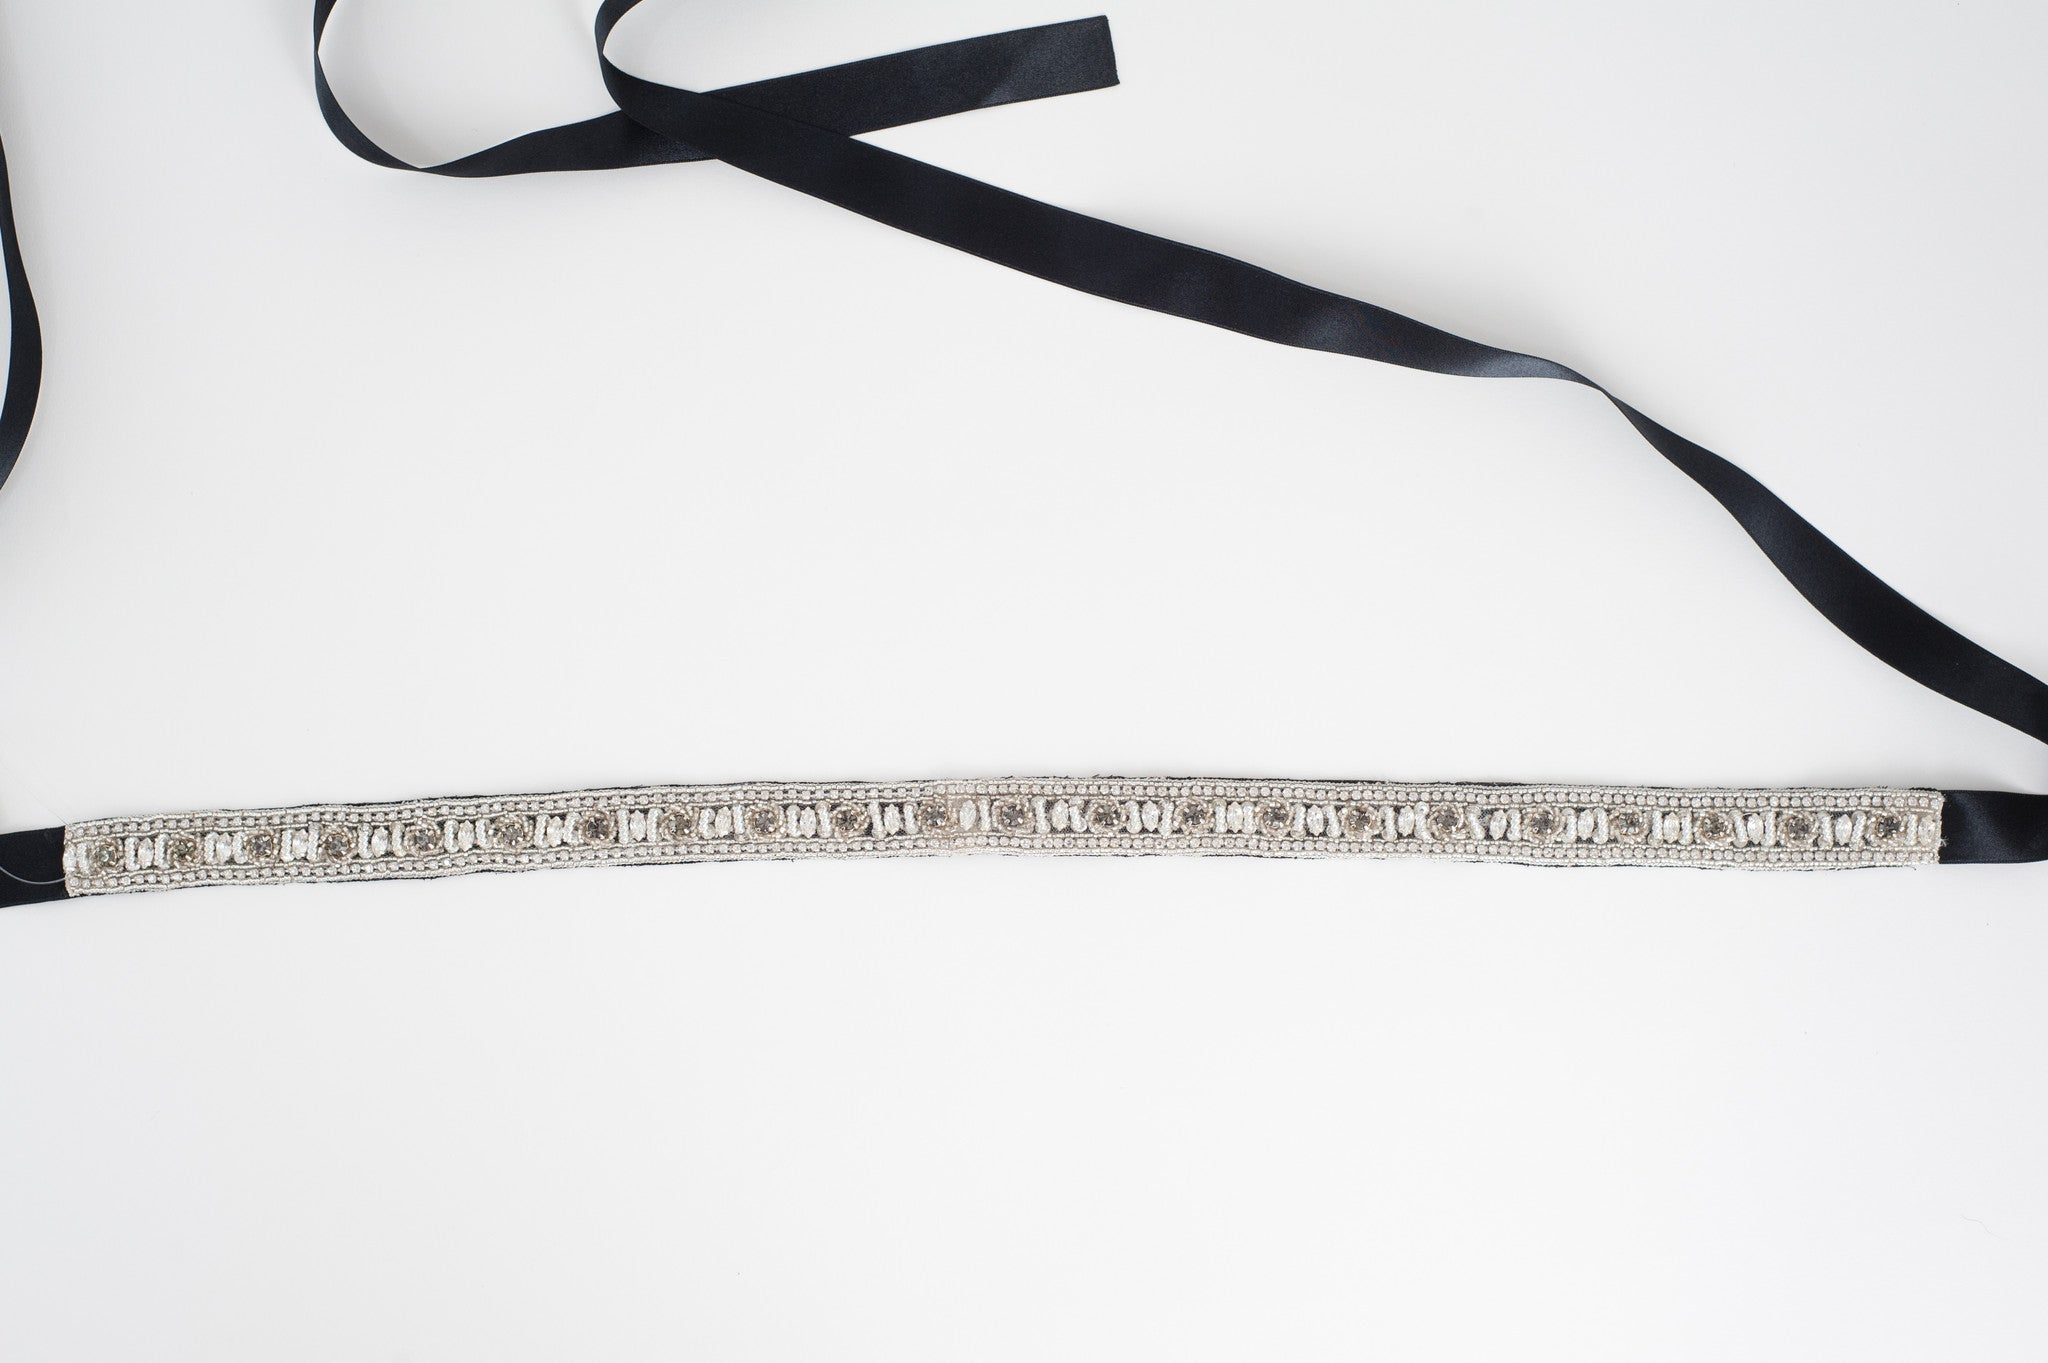 Black crystal wedding sash SB170668